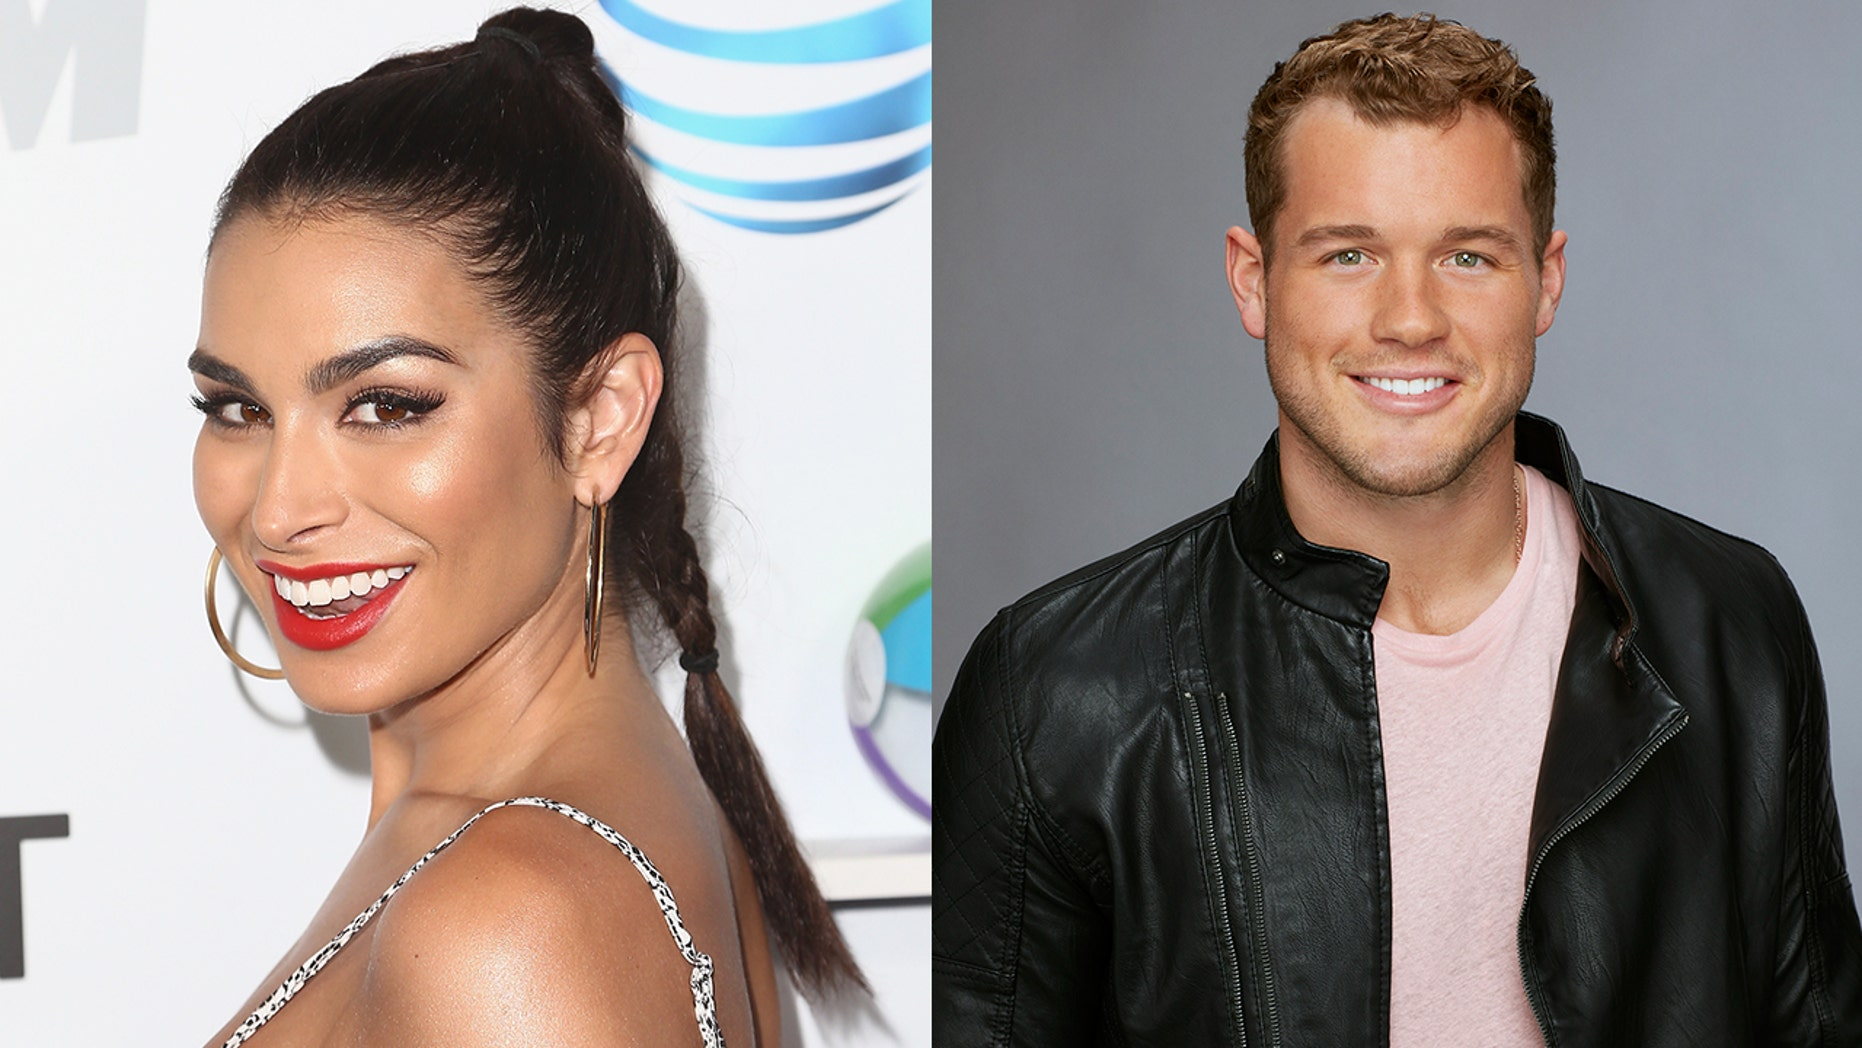 """Ashley Iaconetti shared how she feels about Monday's episode of """"The Bachelorette"""" and the show's portrayal of contestant Colton Underwood's virginity."""